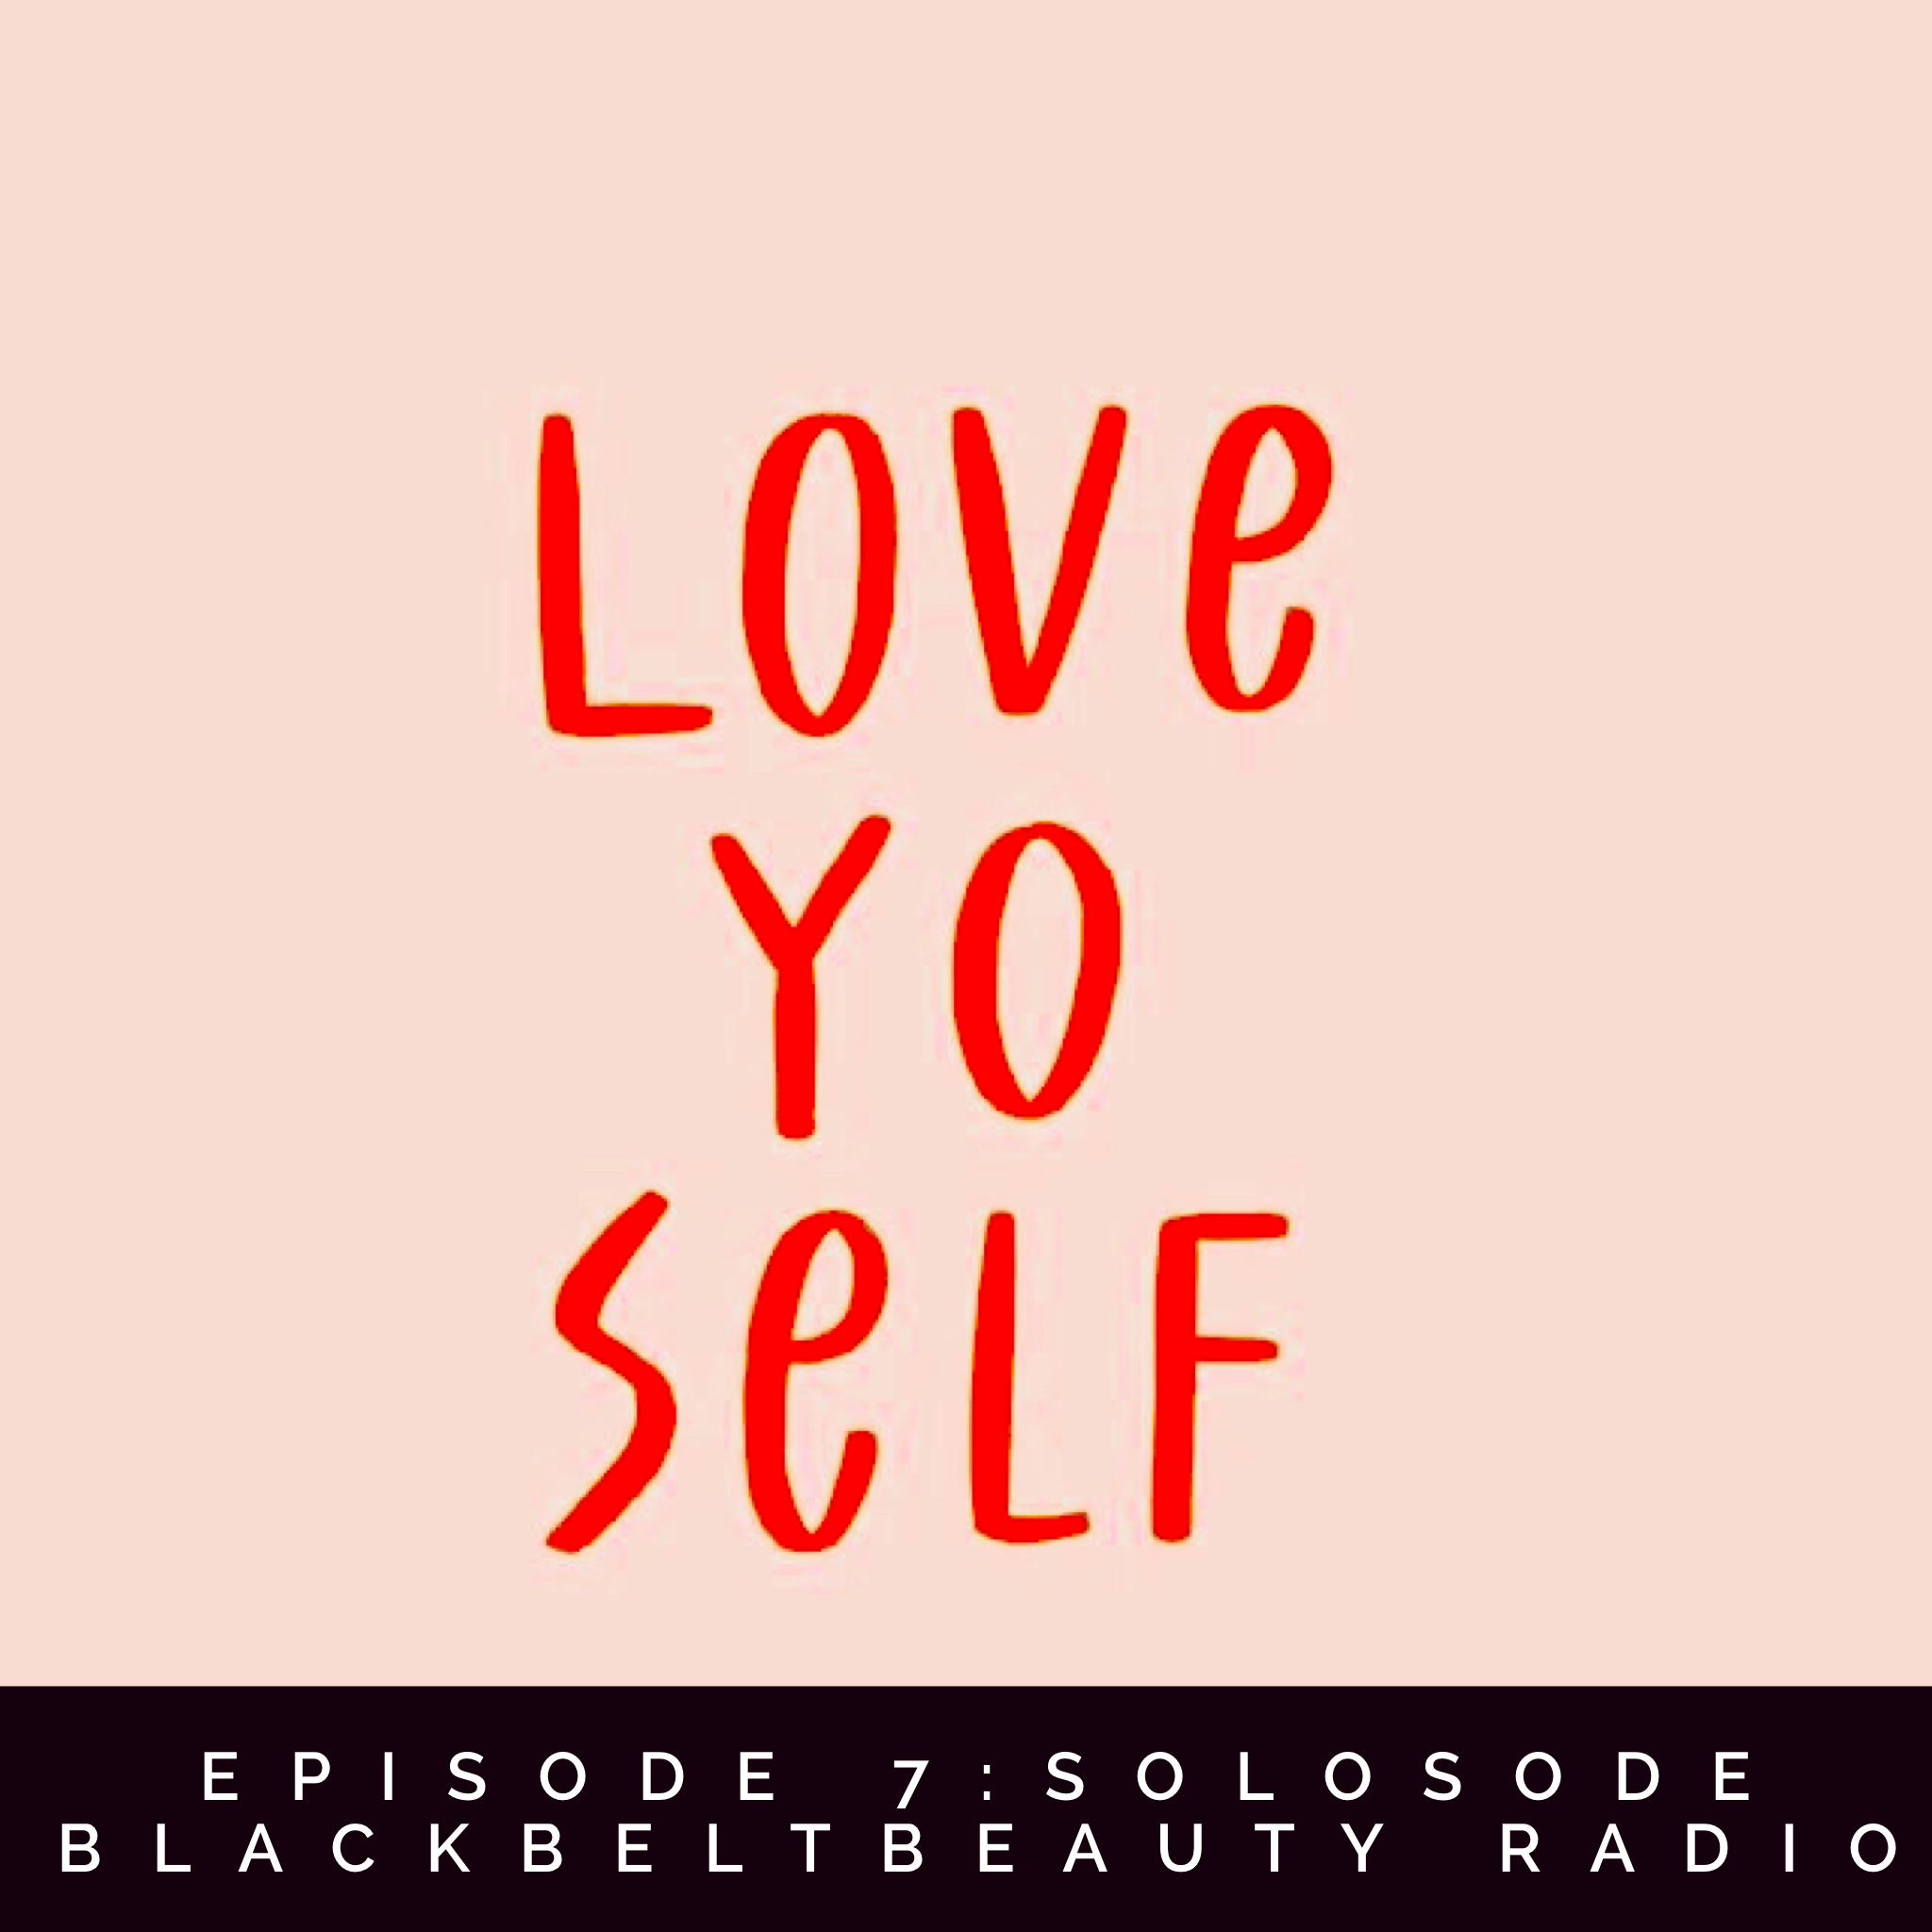 BBB RADIO SOLOSODE- V DAY LOVE YO SELF ARTWORK.PNG